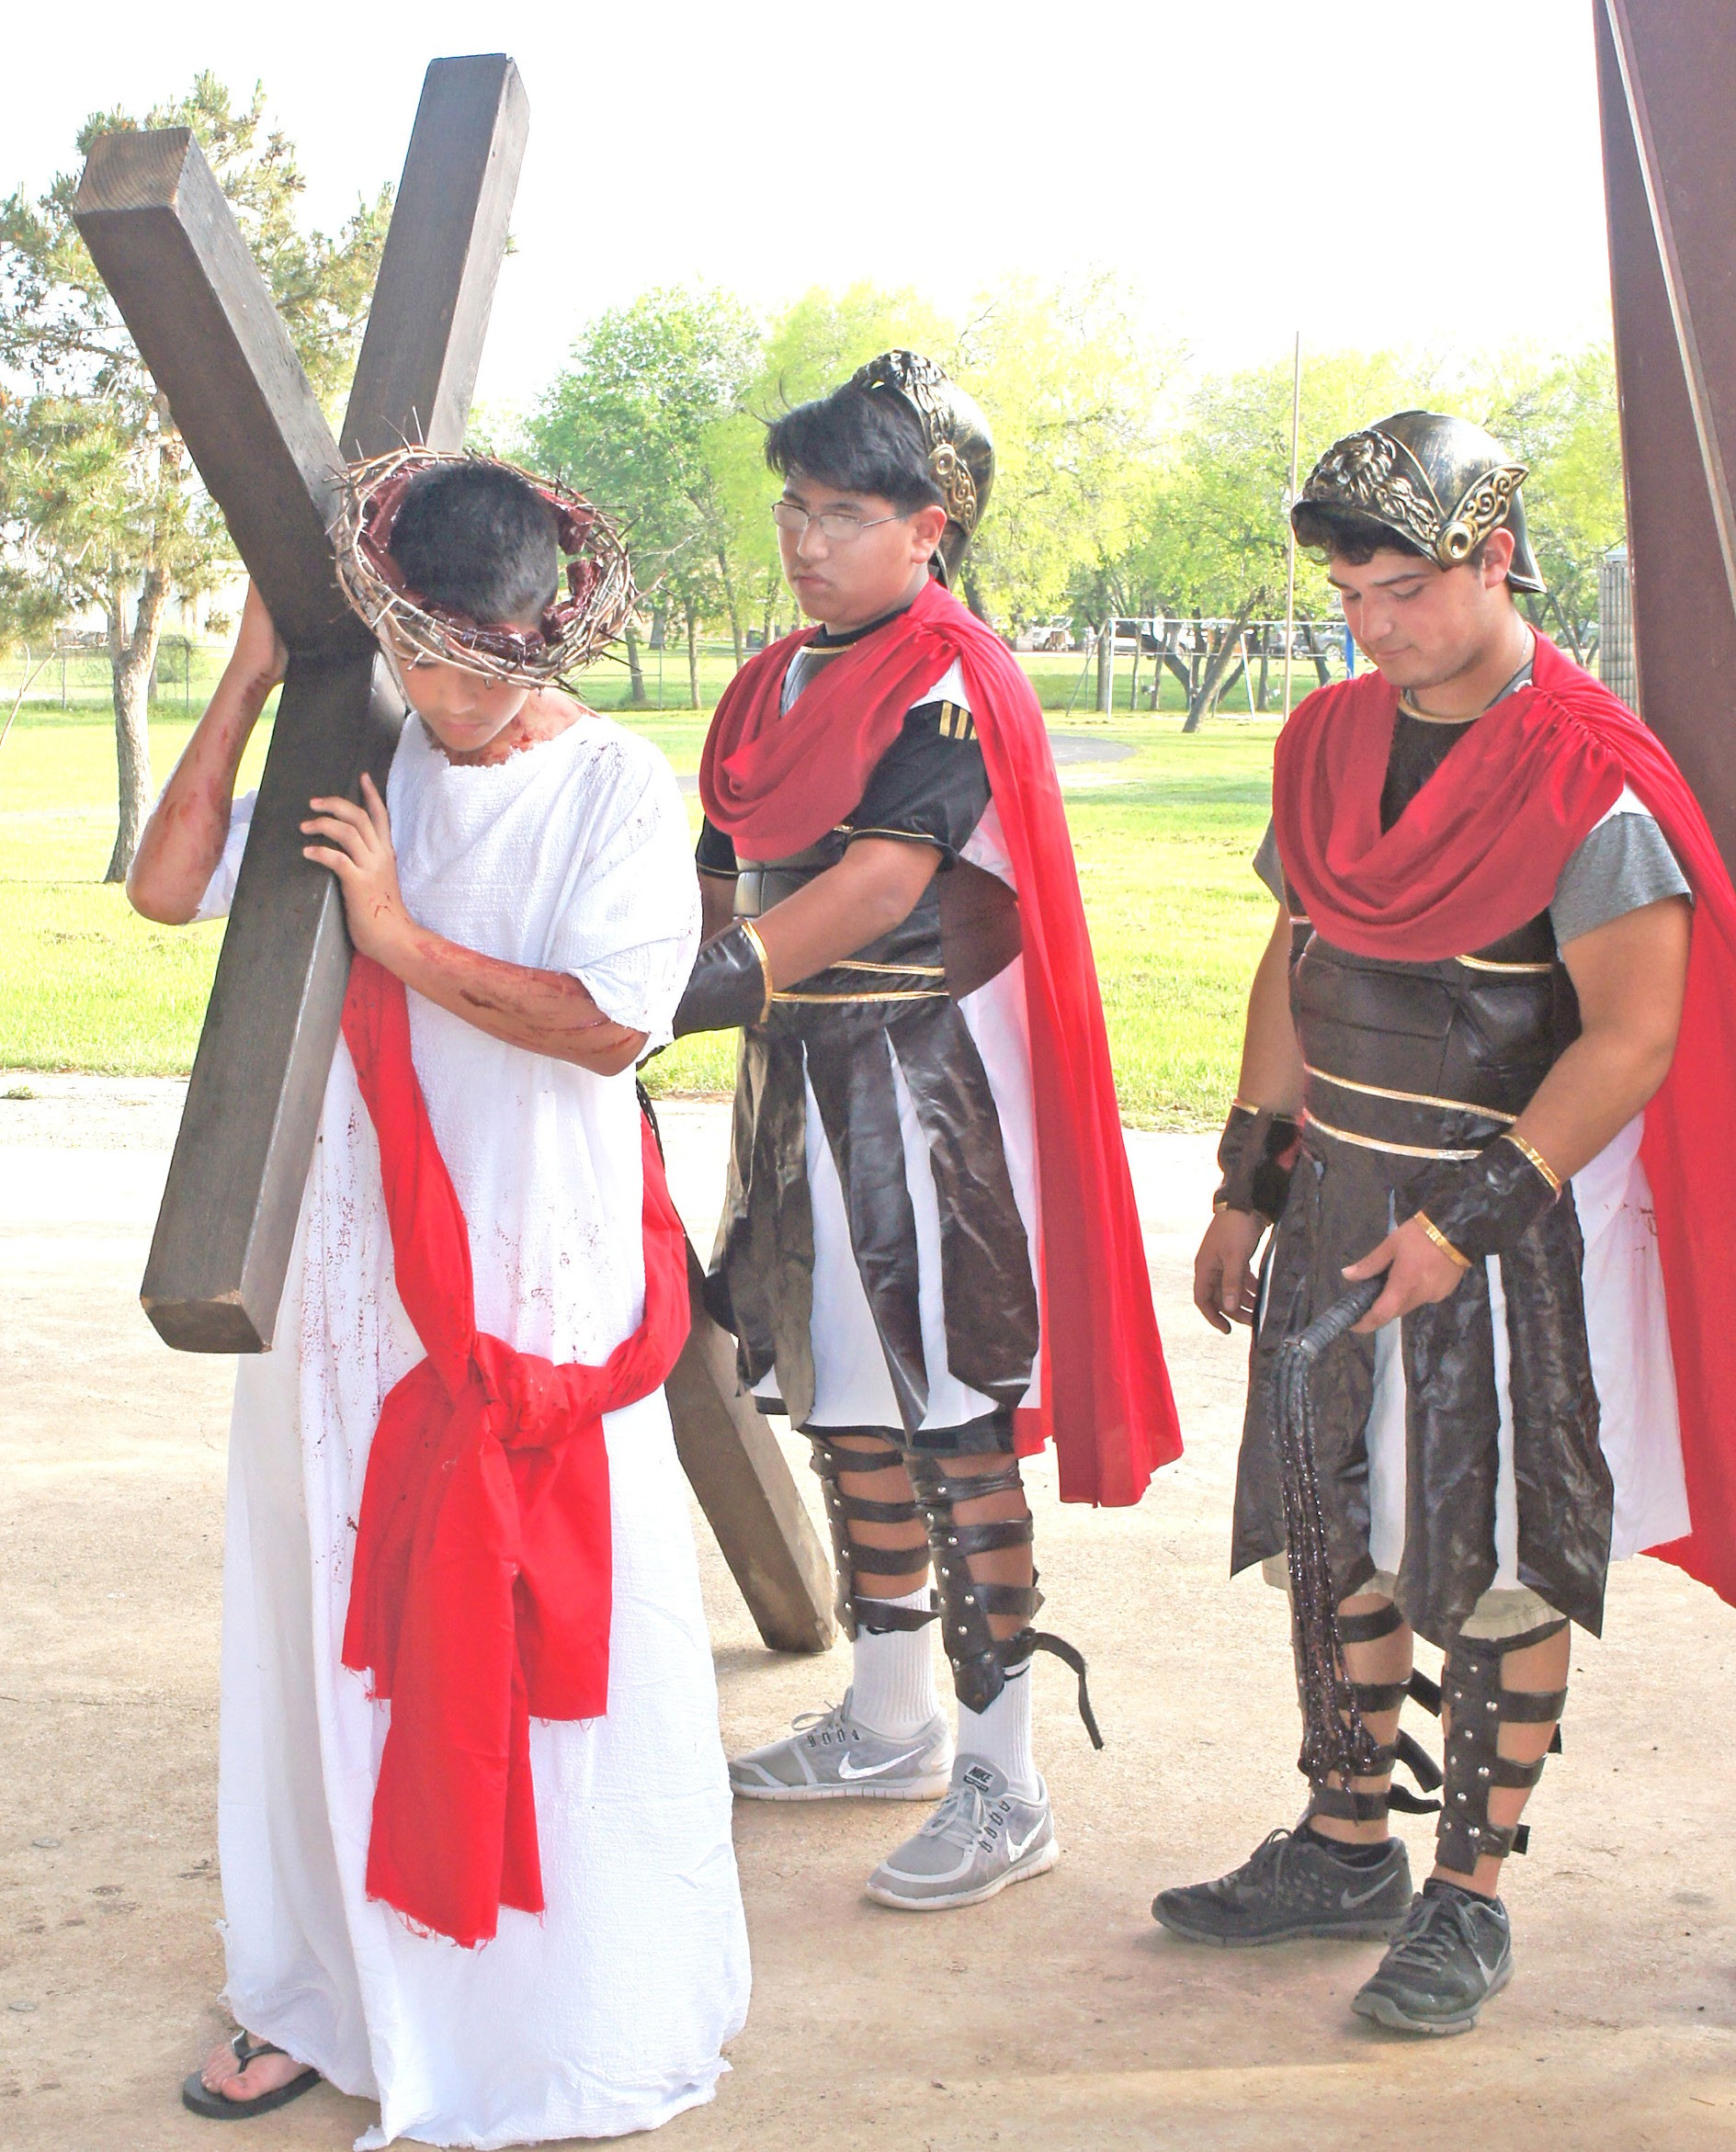 On Friday, March 18, the youth of St. Matthew Catholic Church in Jourdanton presented the Live Stations of the Cross. Many gathered at the Jourdanton City Park to take part in this spiritual presentation. Pictured are: Joseph Gonzales portraying Jesus, as he is beaten by Roman soldiers, played by Emmanuel Lugo and Jesse Ledesma.